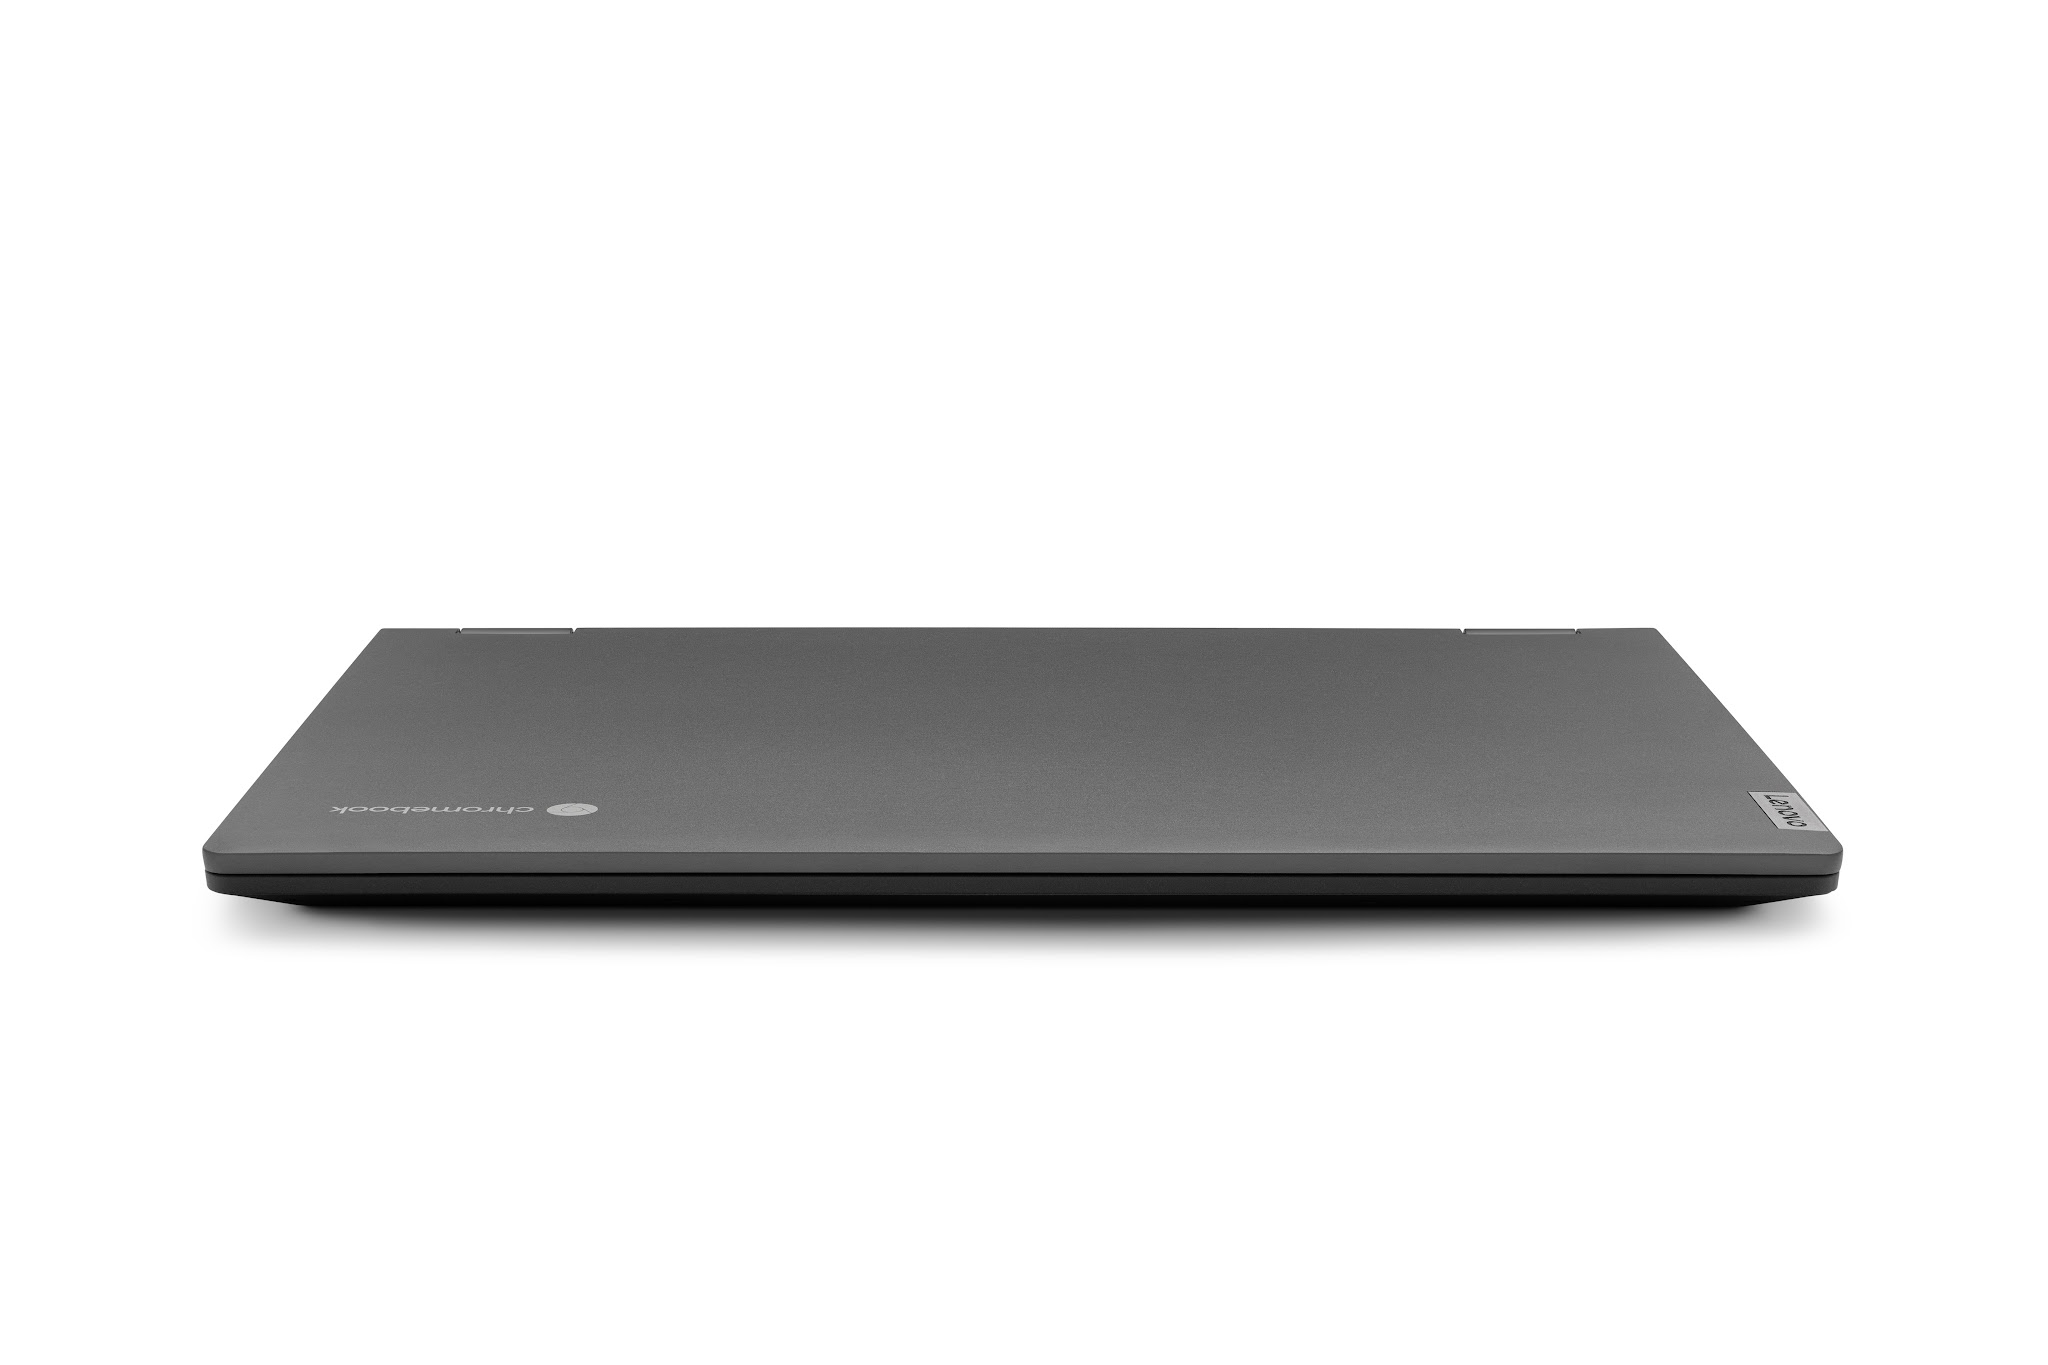 Lenovo IdeaPad Flex 5i (13 tum, 5) - photo 15